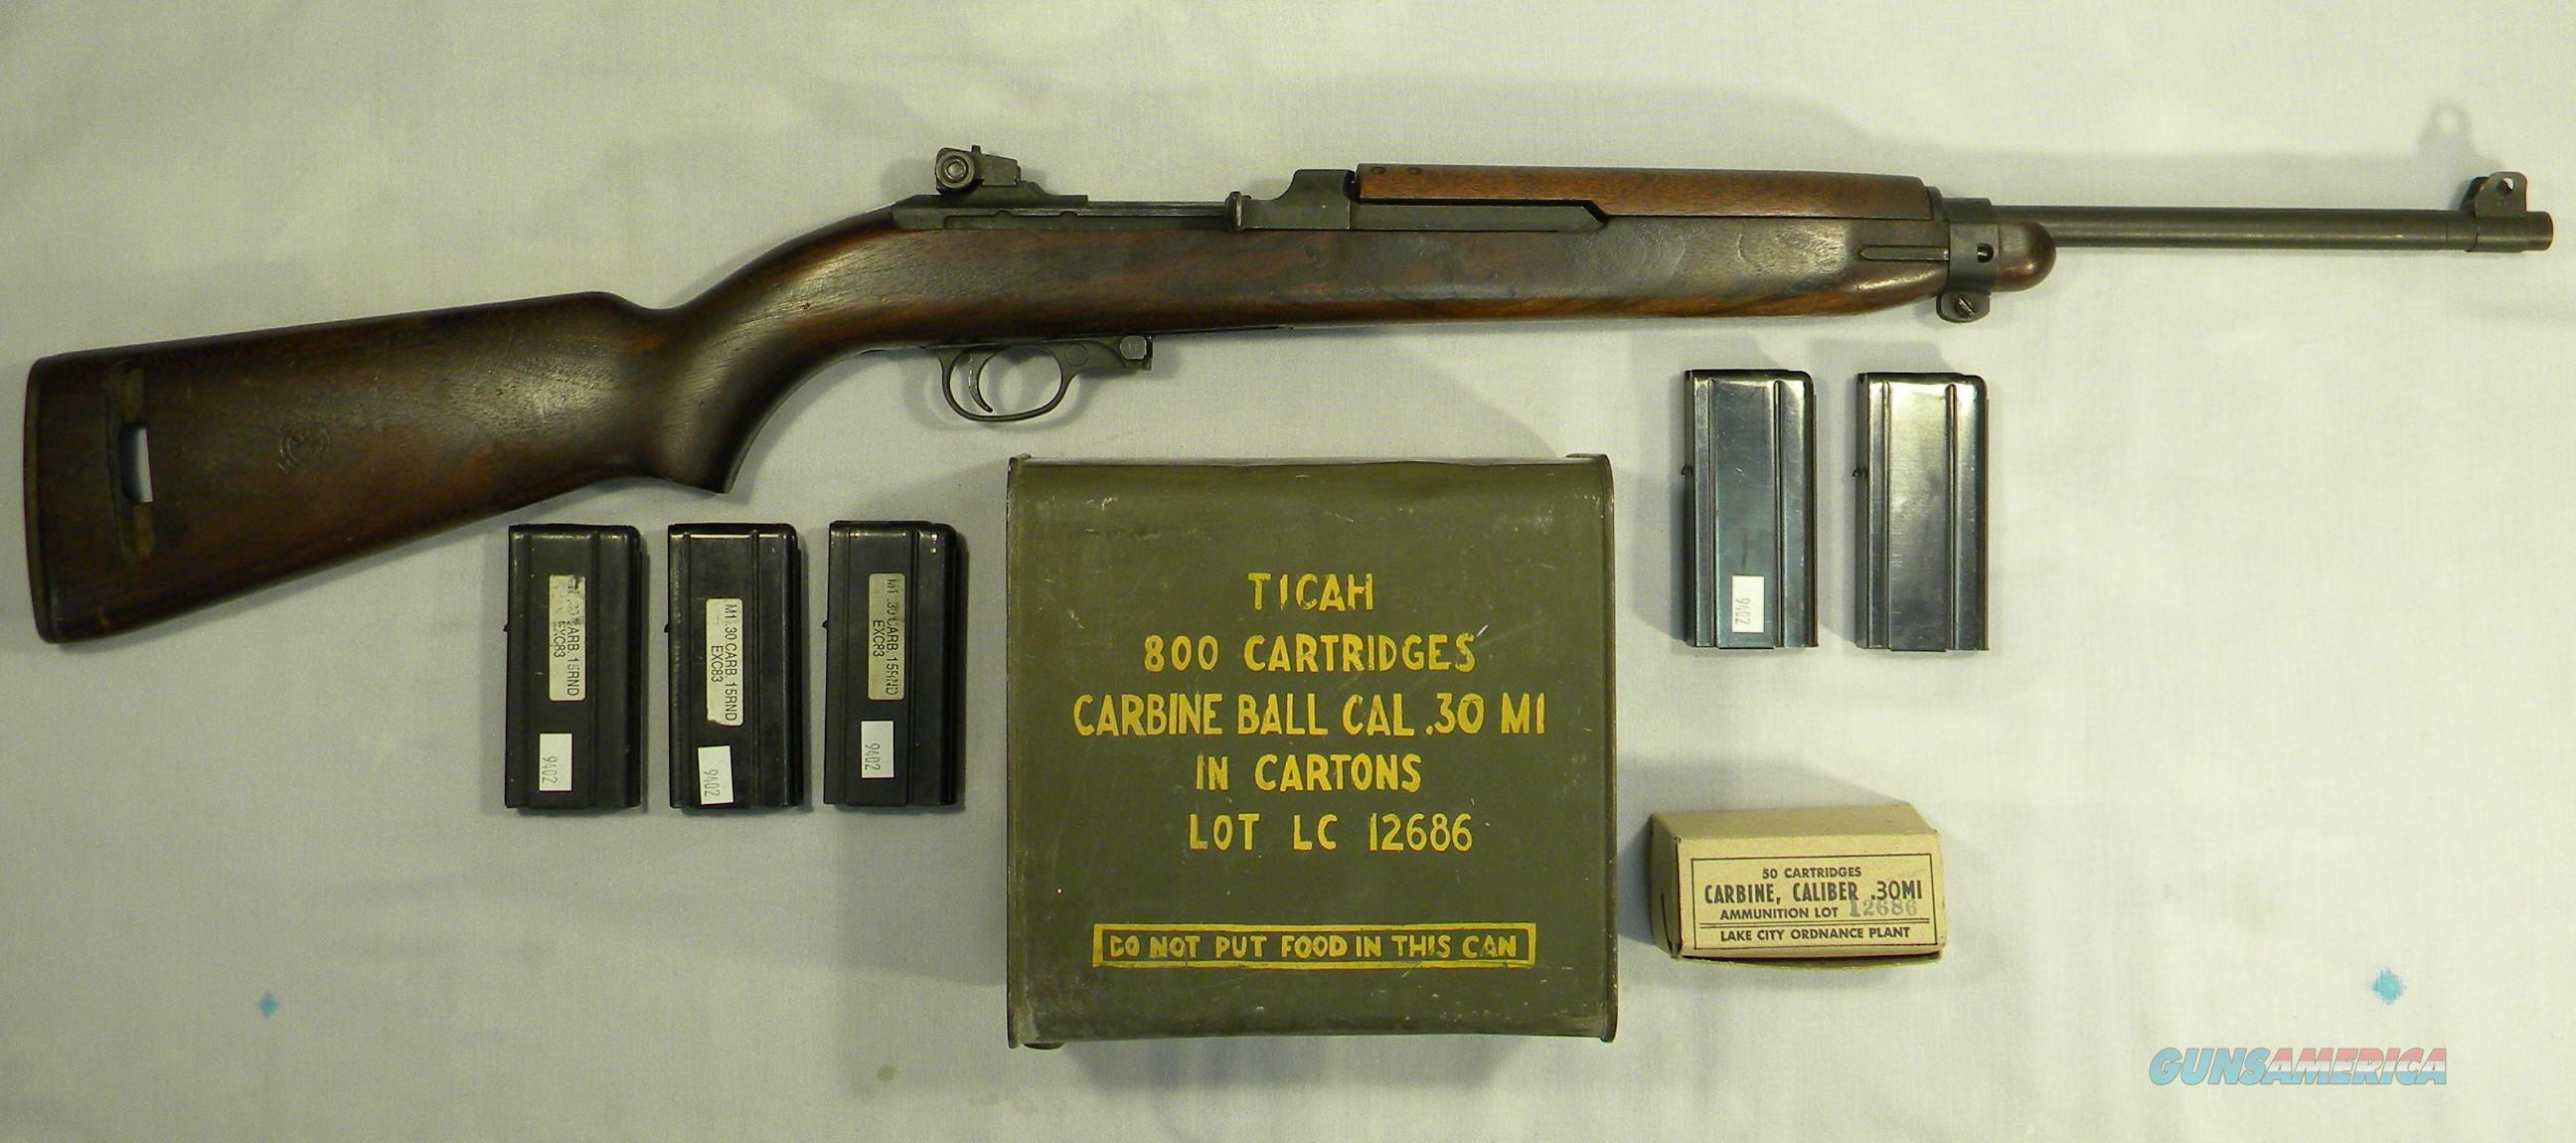 Inland M1 Carbine, 1944 WWII Type 2 Correct, .30 Carbine Semi-Automatic Rifle  Guns > Rifles > Military Misc. Rifles US > M1 Carbine